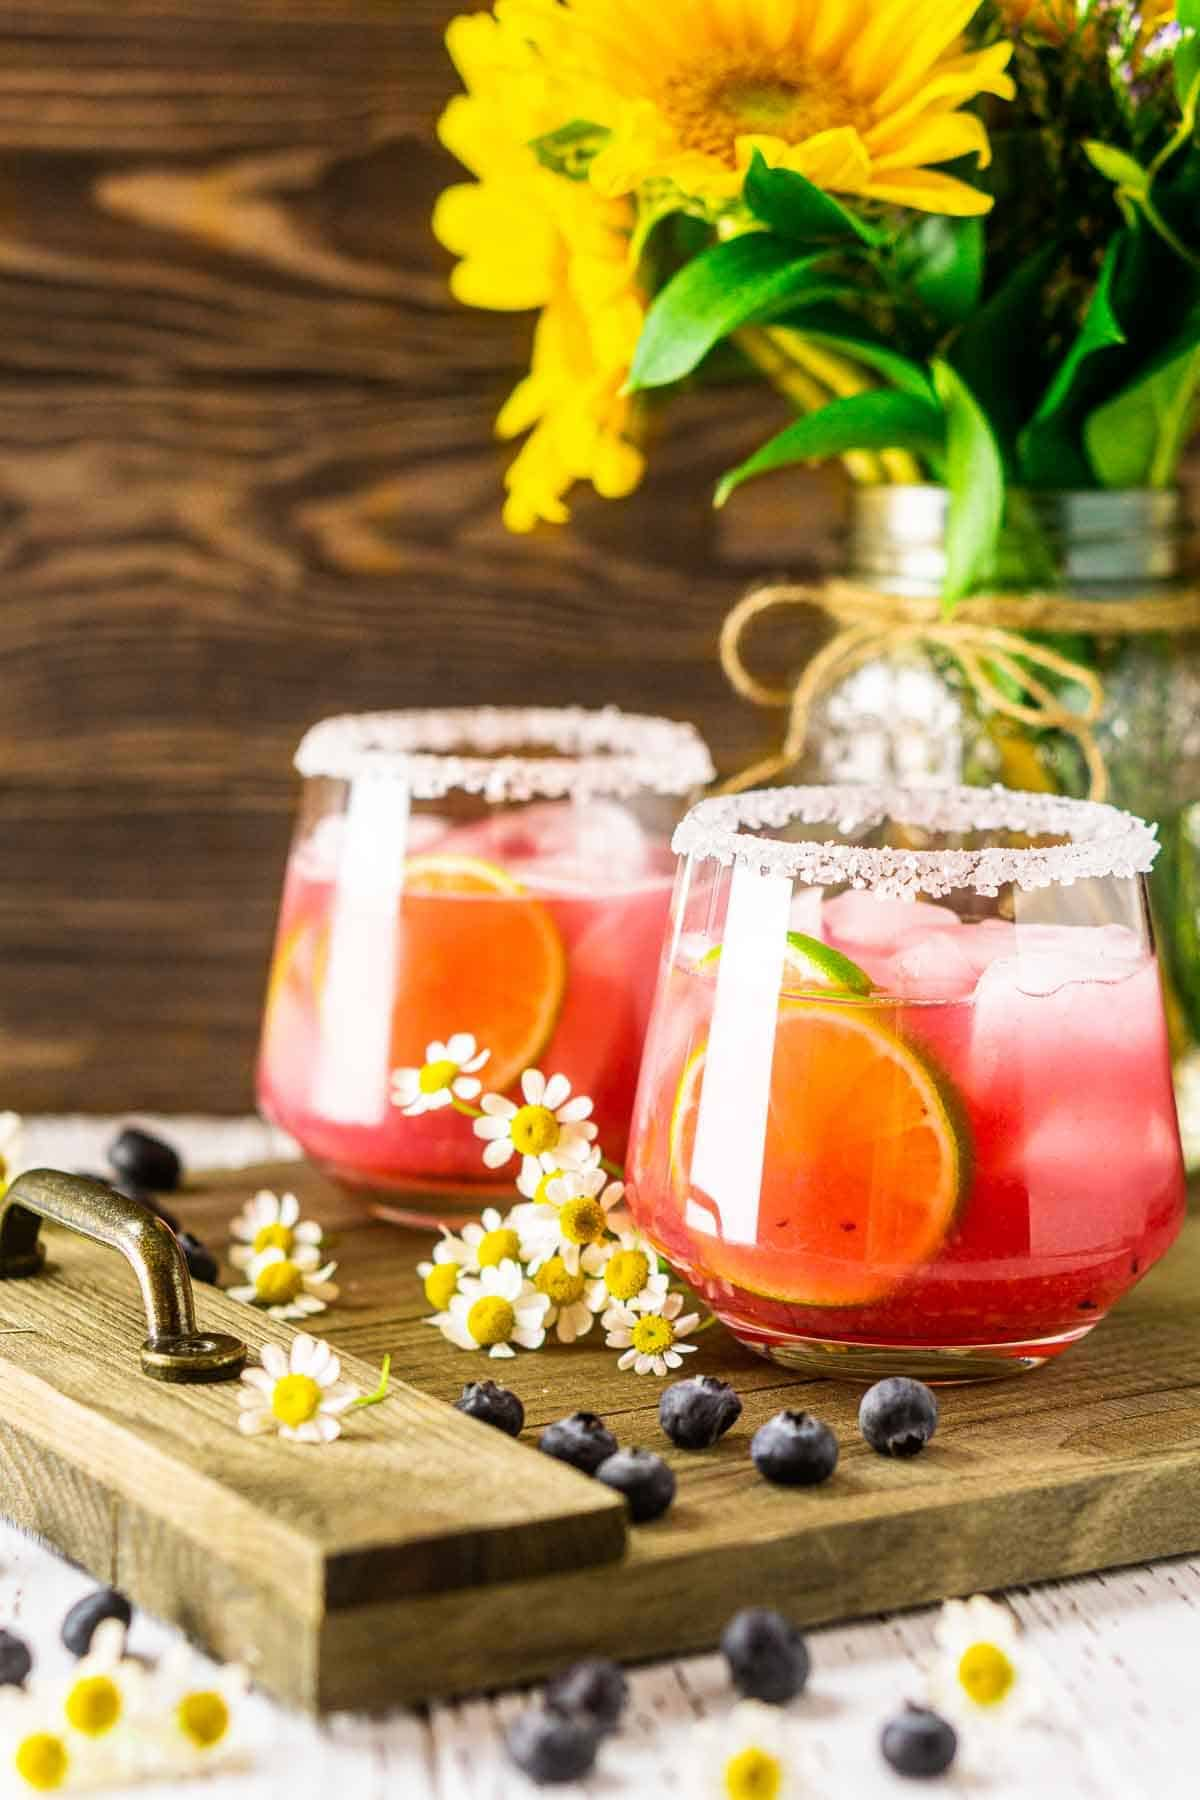 A close-up of a blueberry margarita on a wooden tray with flowers behind it.